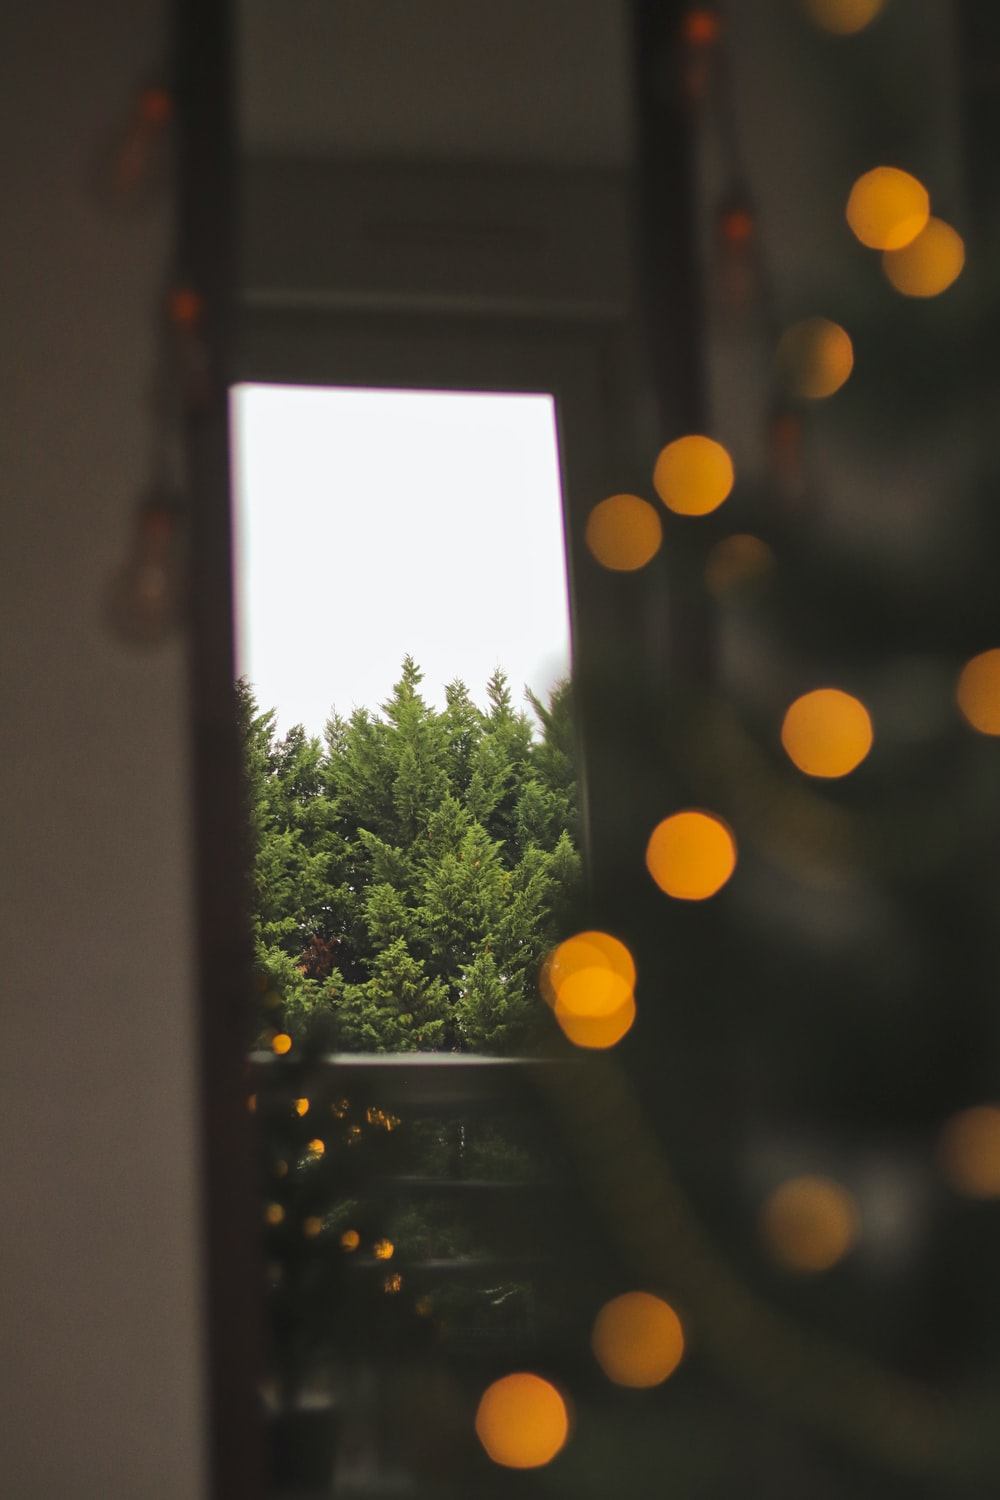 bokeh photography of opened window